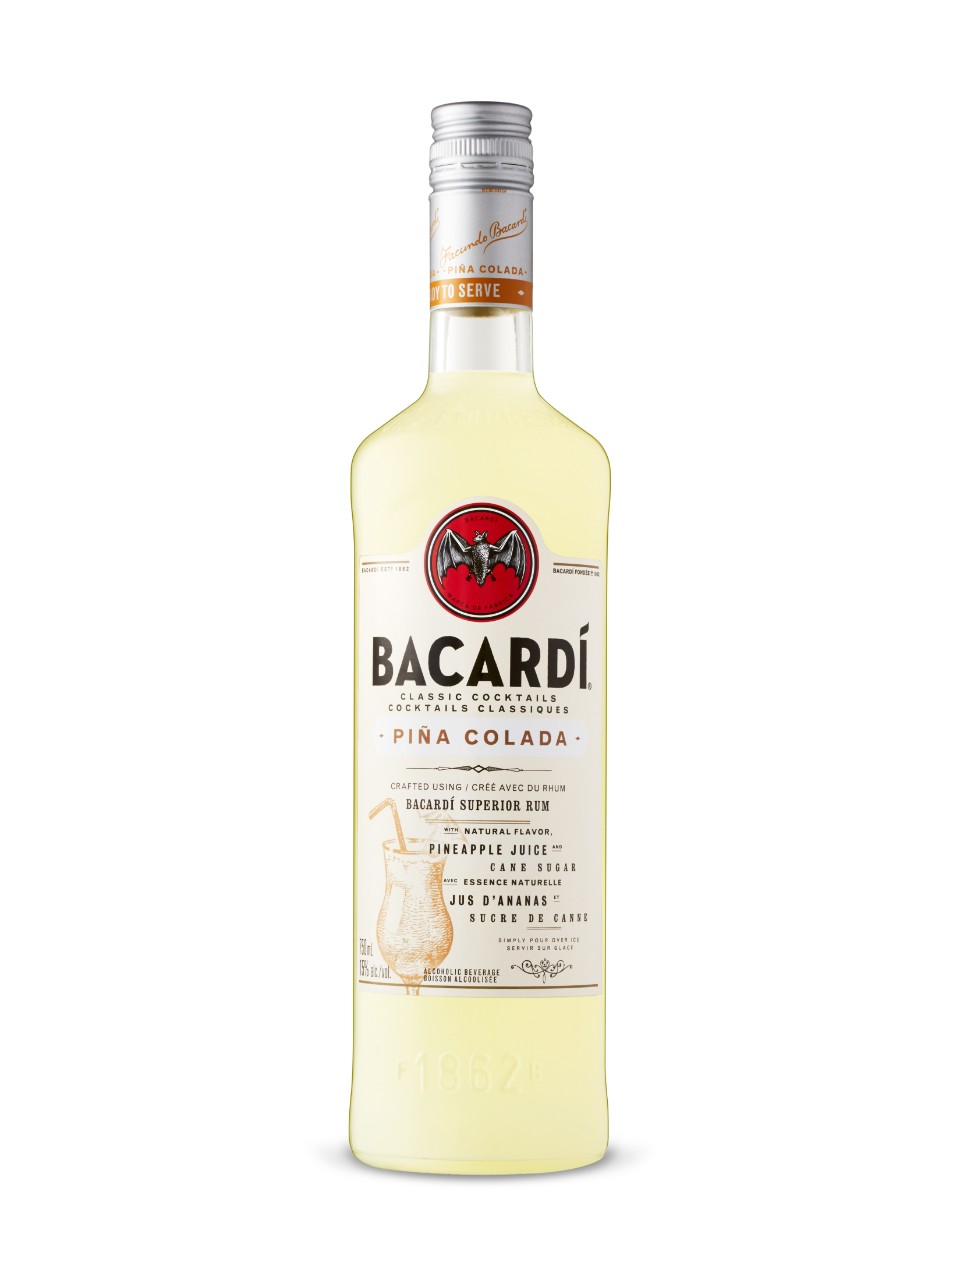 Bacardi Pina Colada Cocktail from LCBO